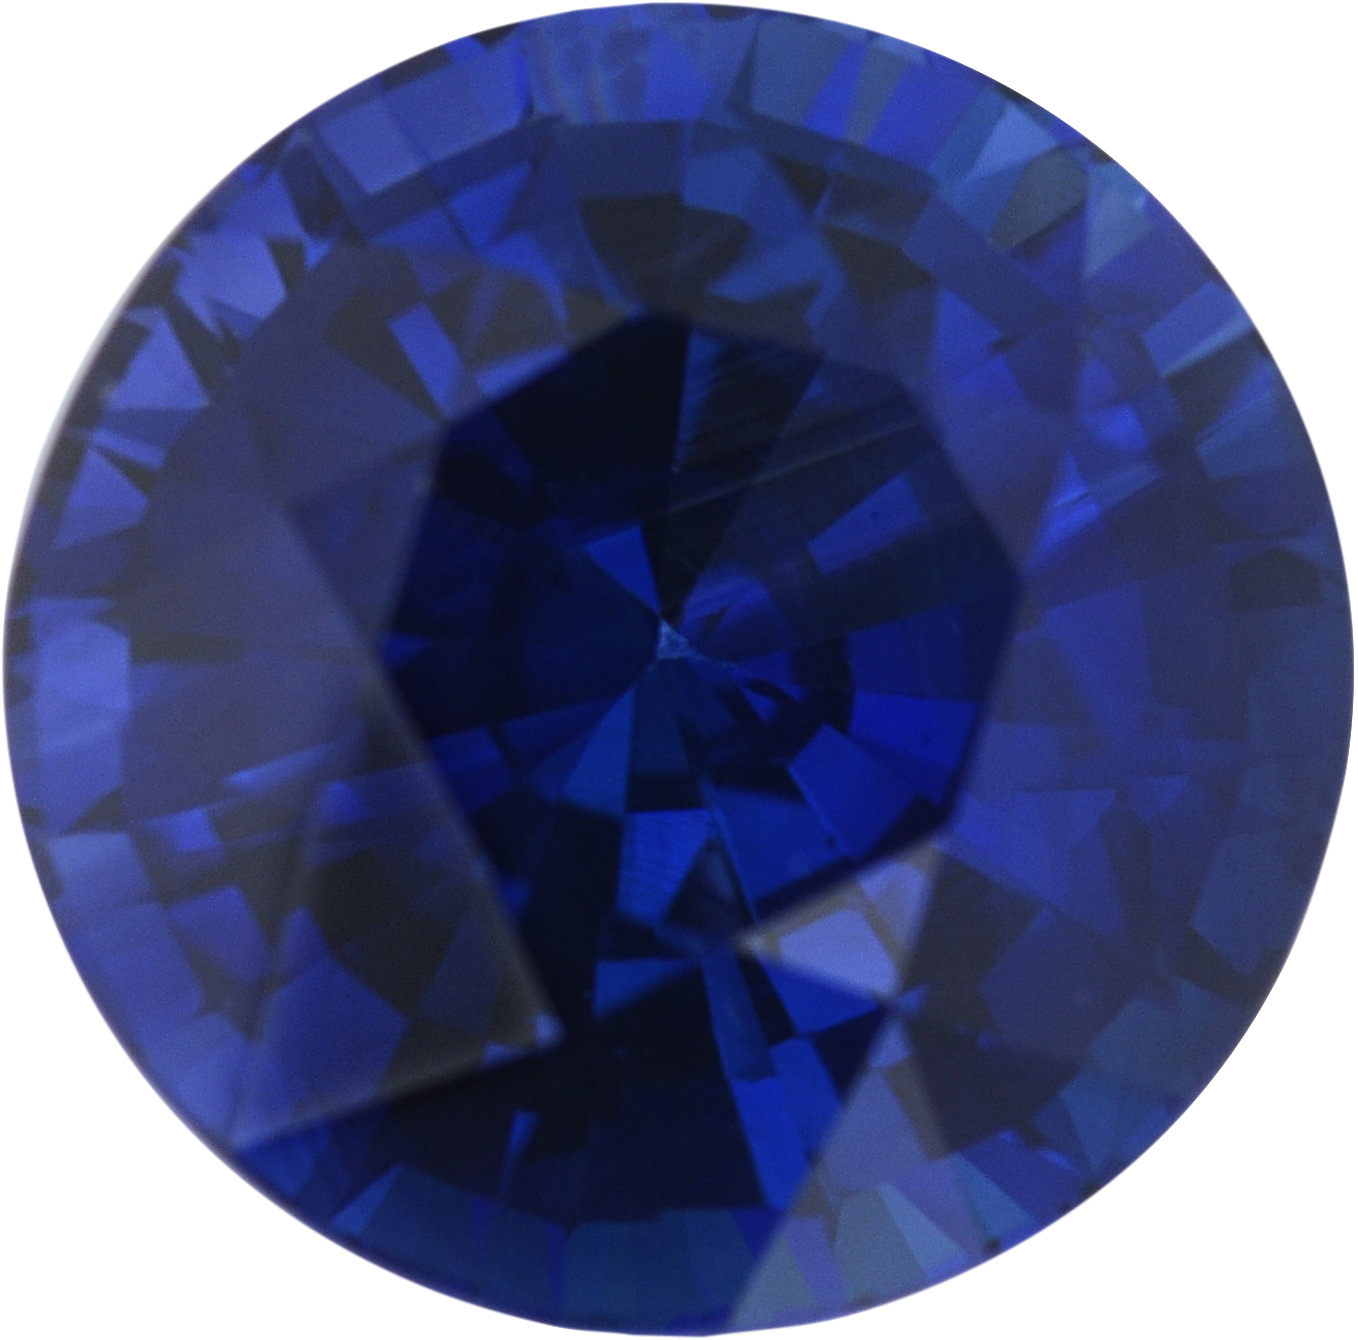 1.67 carats Blue Loose Sapphire Gemstone in Round Cut, 6.91 mm